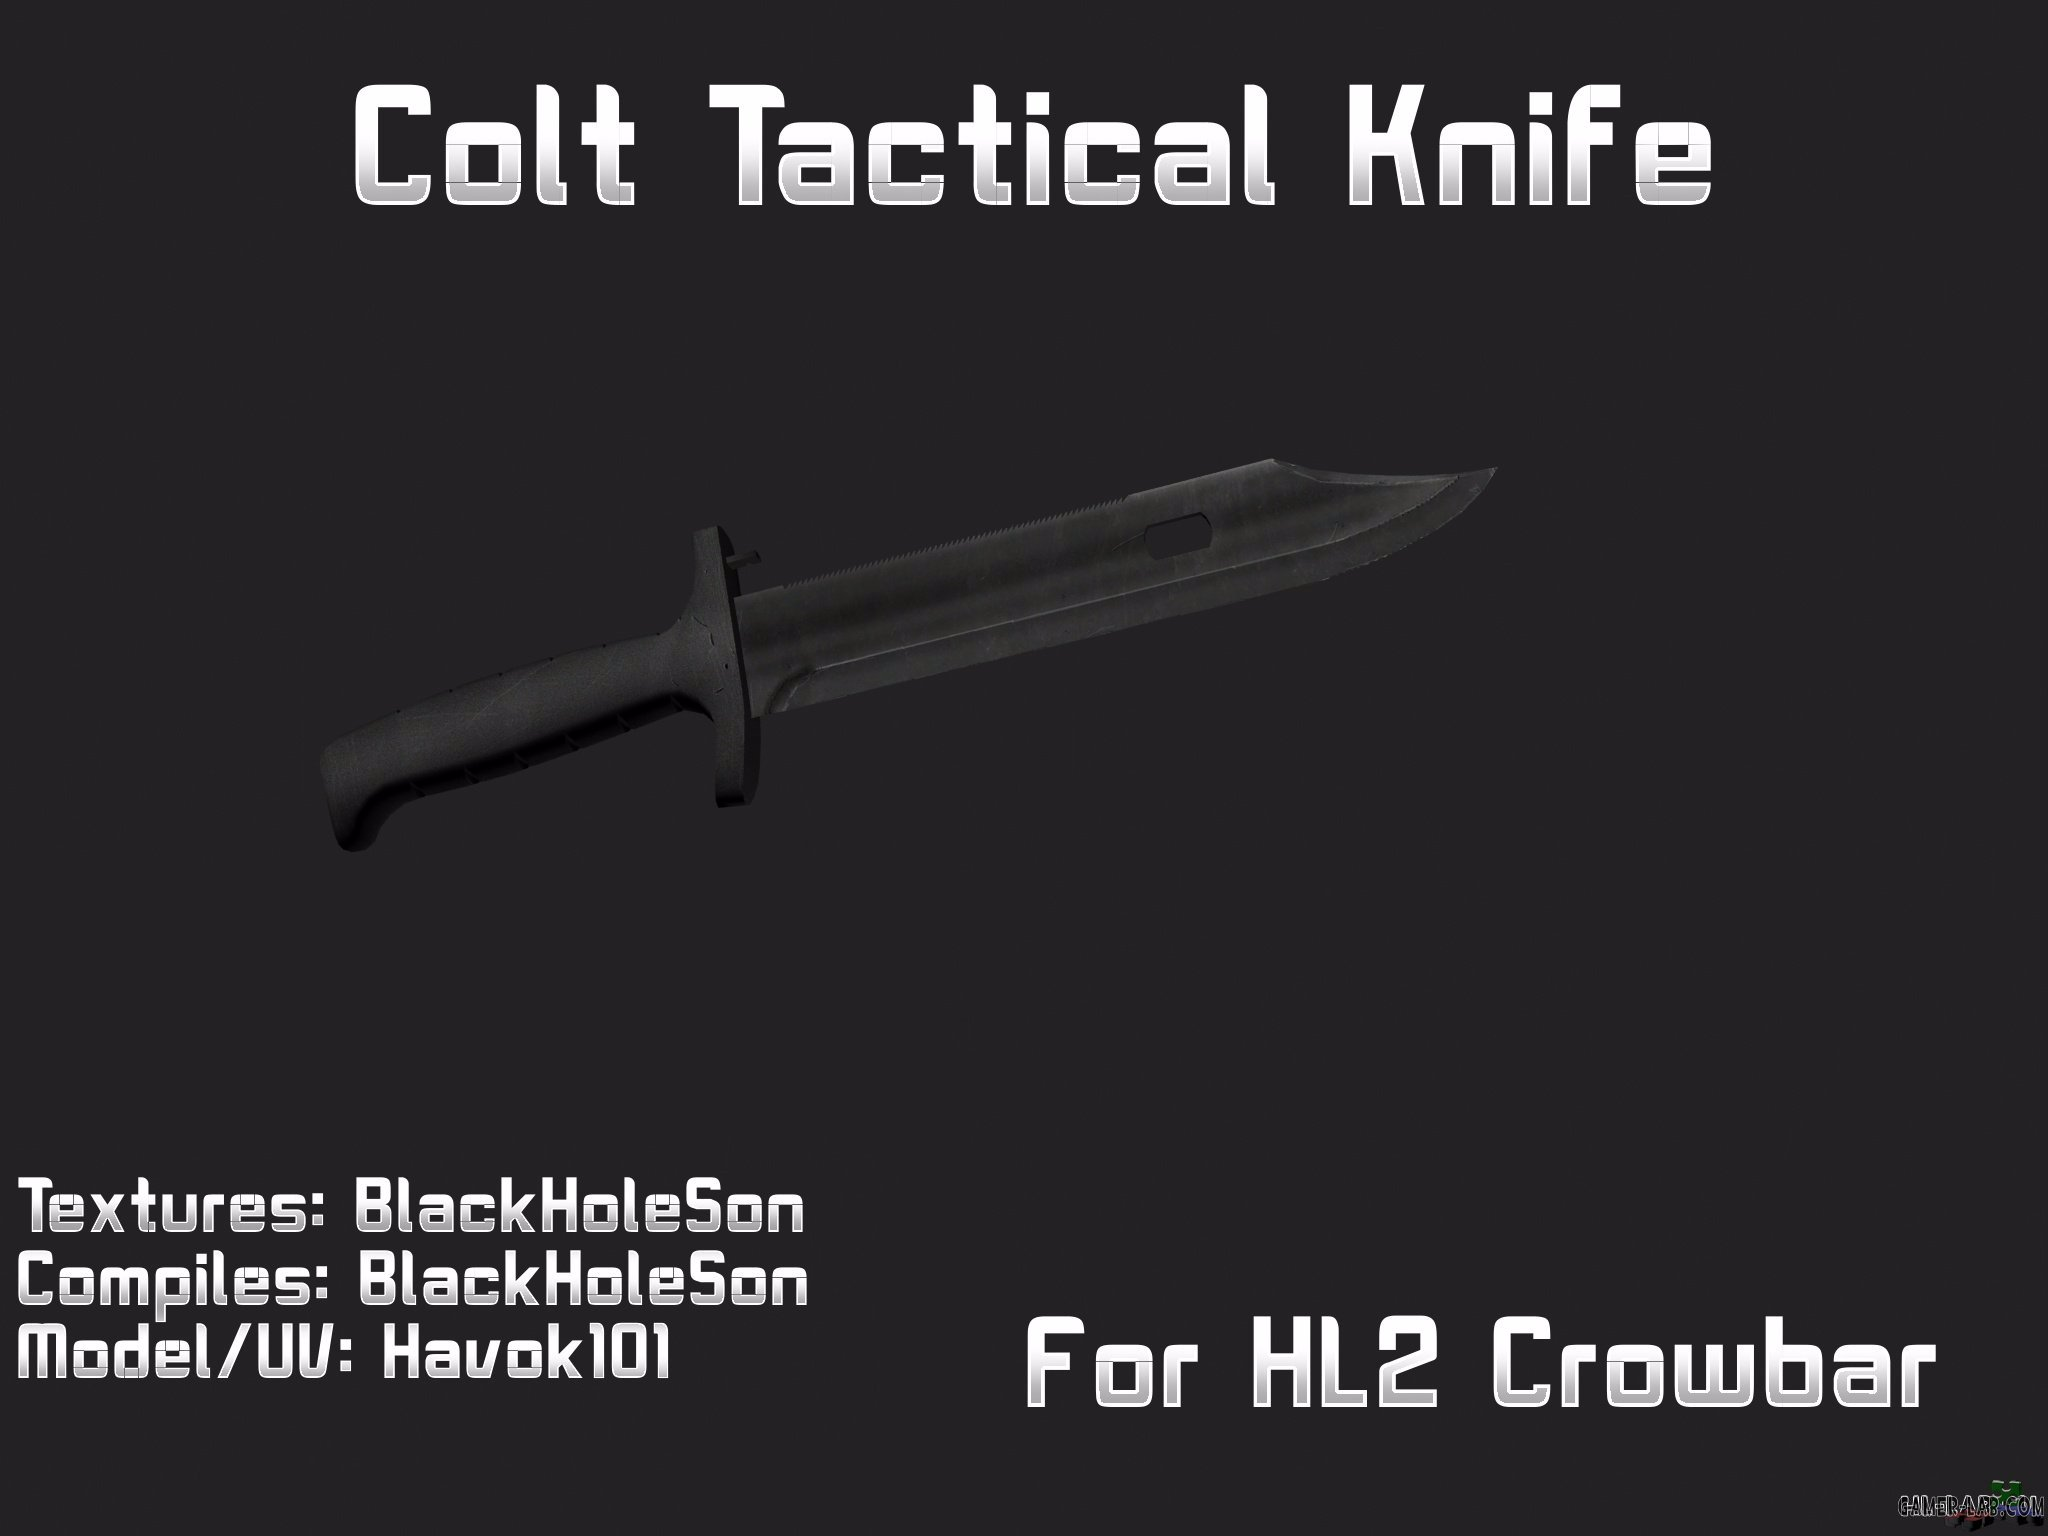 Colt Tactical for Crowbar